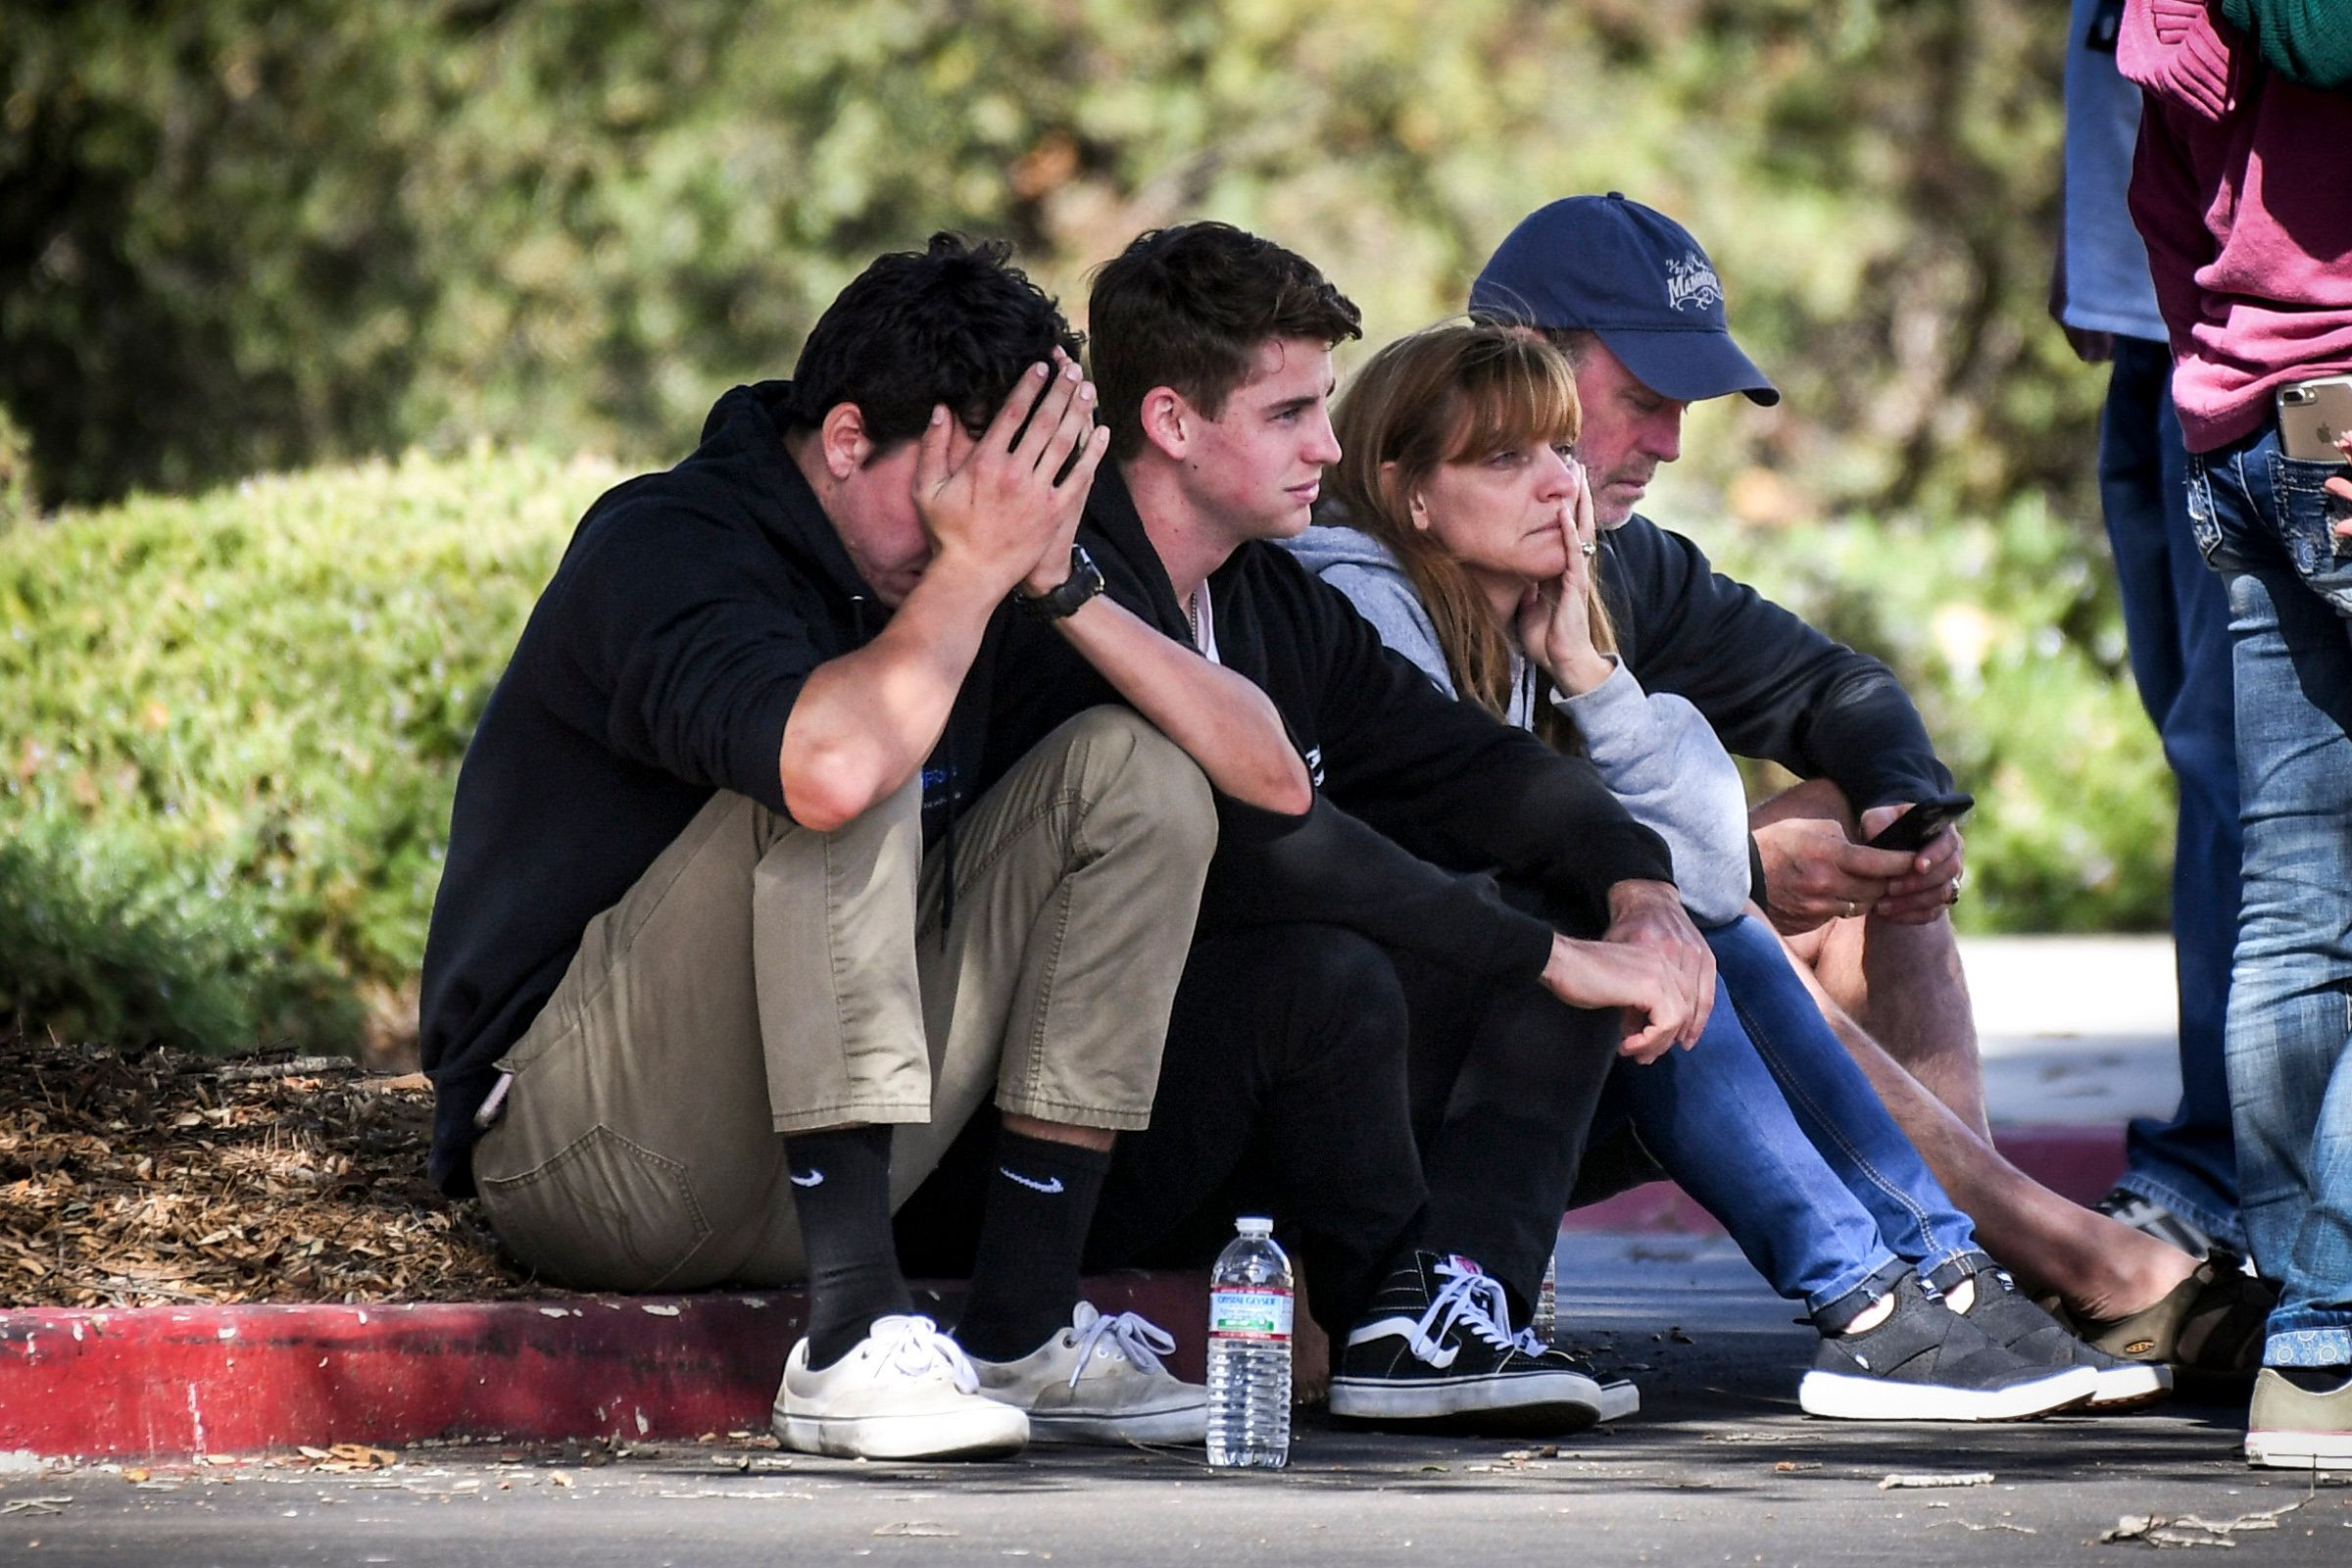 THOUSAND OAKS, CA - NOVEMBER 08: People awaiting word of loved ones from the Borderline Bar & Grill shooting in Thousand Oaks at the Alex Fiore Teen Center in Thousand Oaks, CA. 13 people including a sheriff deputy and the shooter were killed in a mass shooting at the bar overnight.  (Photo by David Crane/Digital First Media/Los Angeles Daily News via Getty Images)